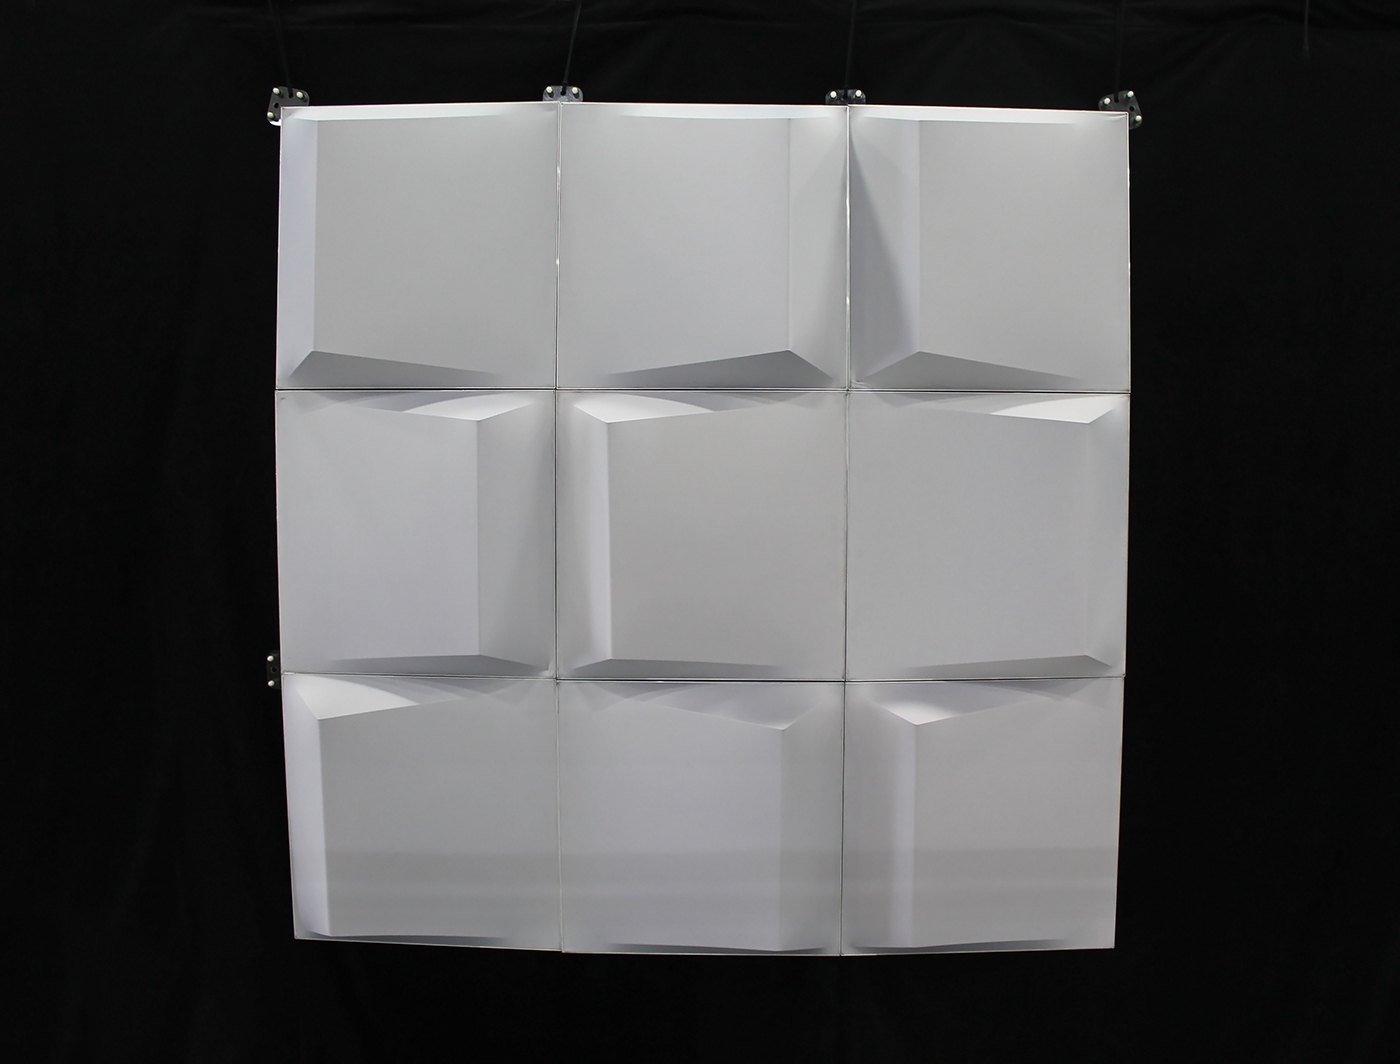 Wedge panels in natural light